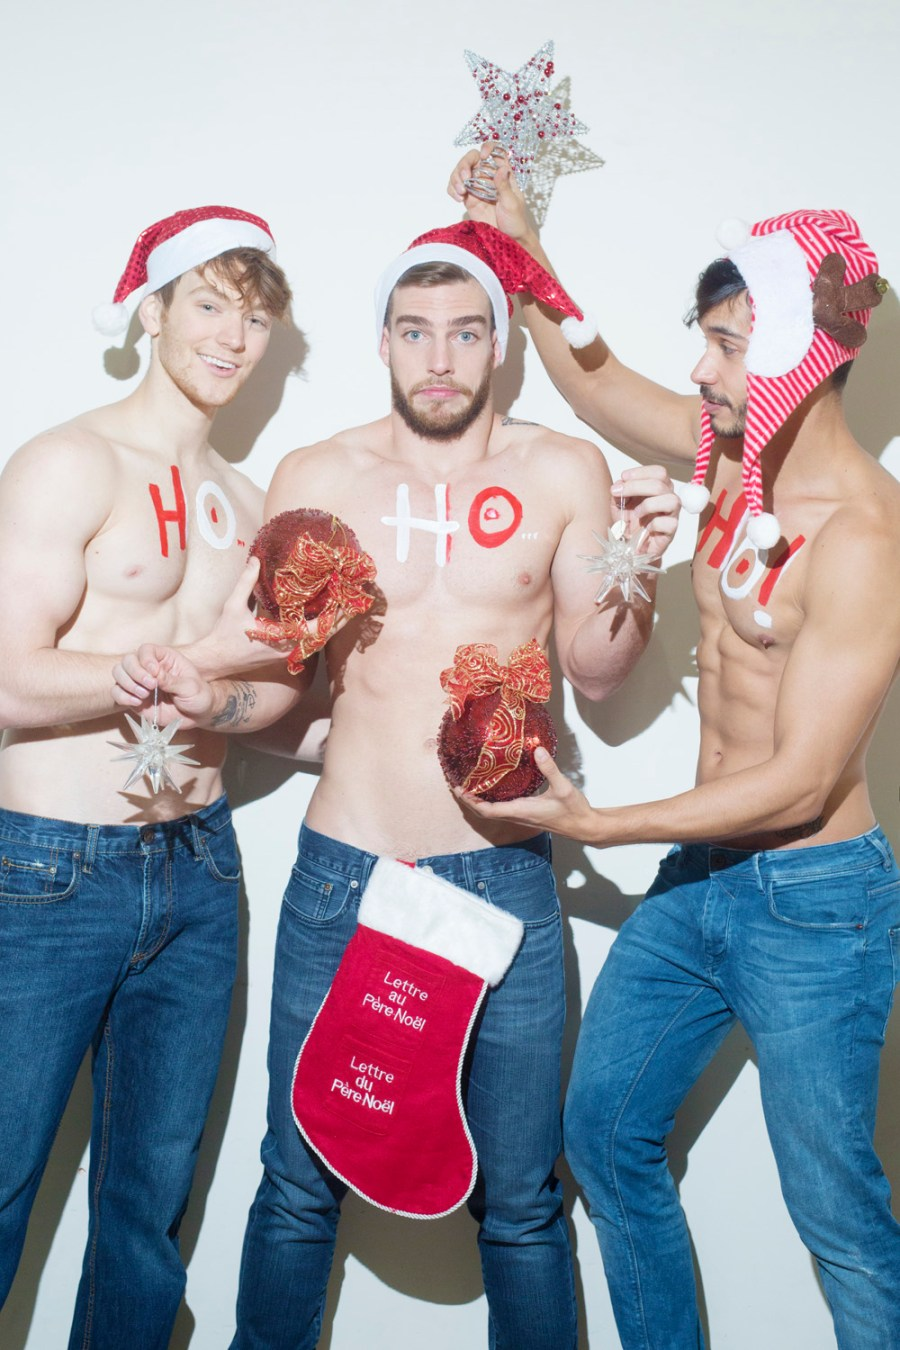 All we want is a ho-ho-hot Xmas, introducing an exclusive Christmas theme shot with 3 stunners first the sexy Daniel Sisniega from Contempt Models, and hotties Rey Ocando & Jonathan Clark by BANG! Management captured by talented Luis de la Luz, with M&H by Gio Lozano and Production & Assistant by Eric Rivera.